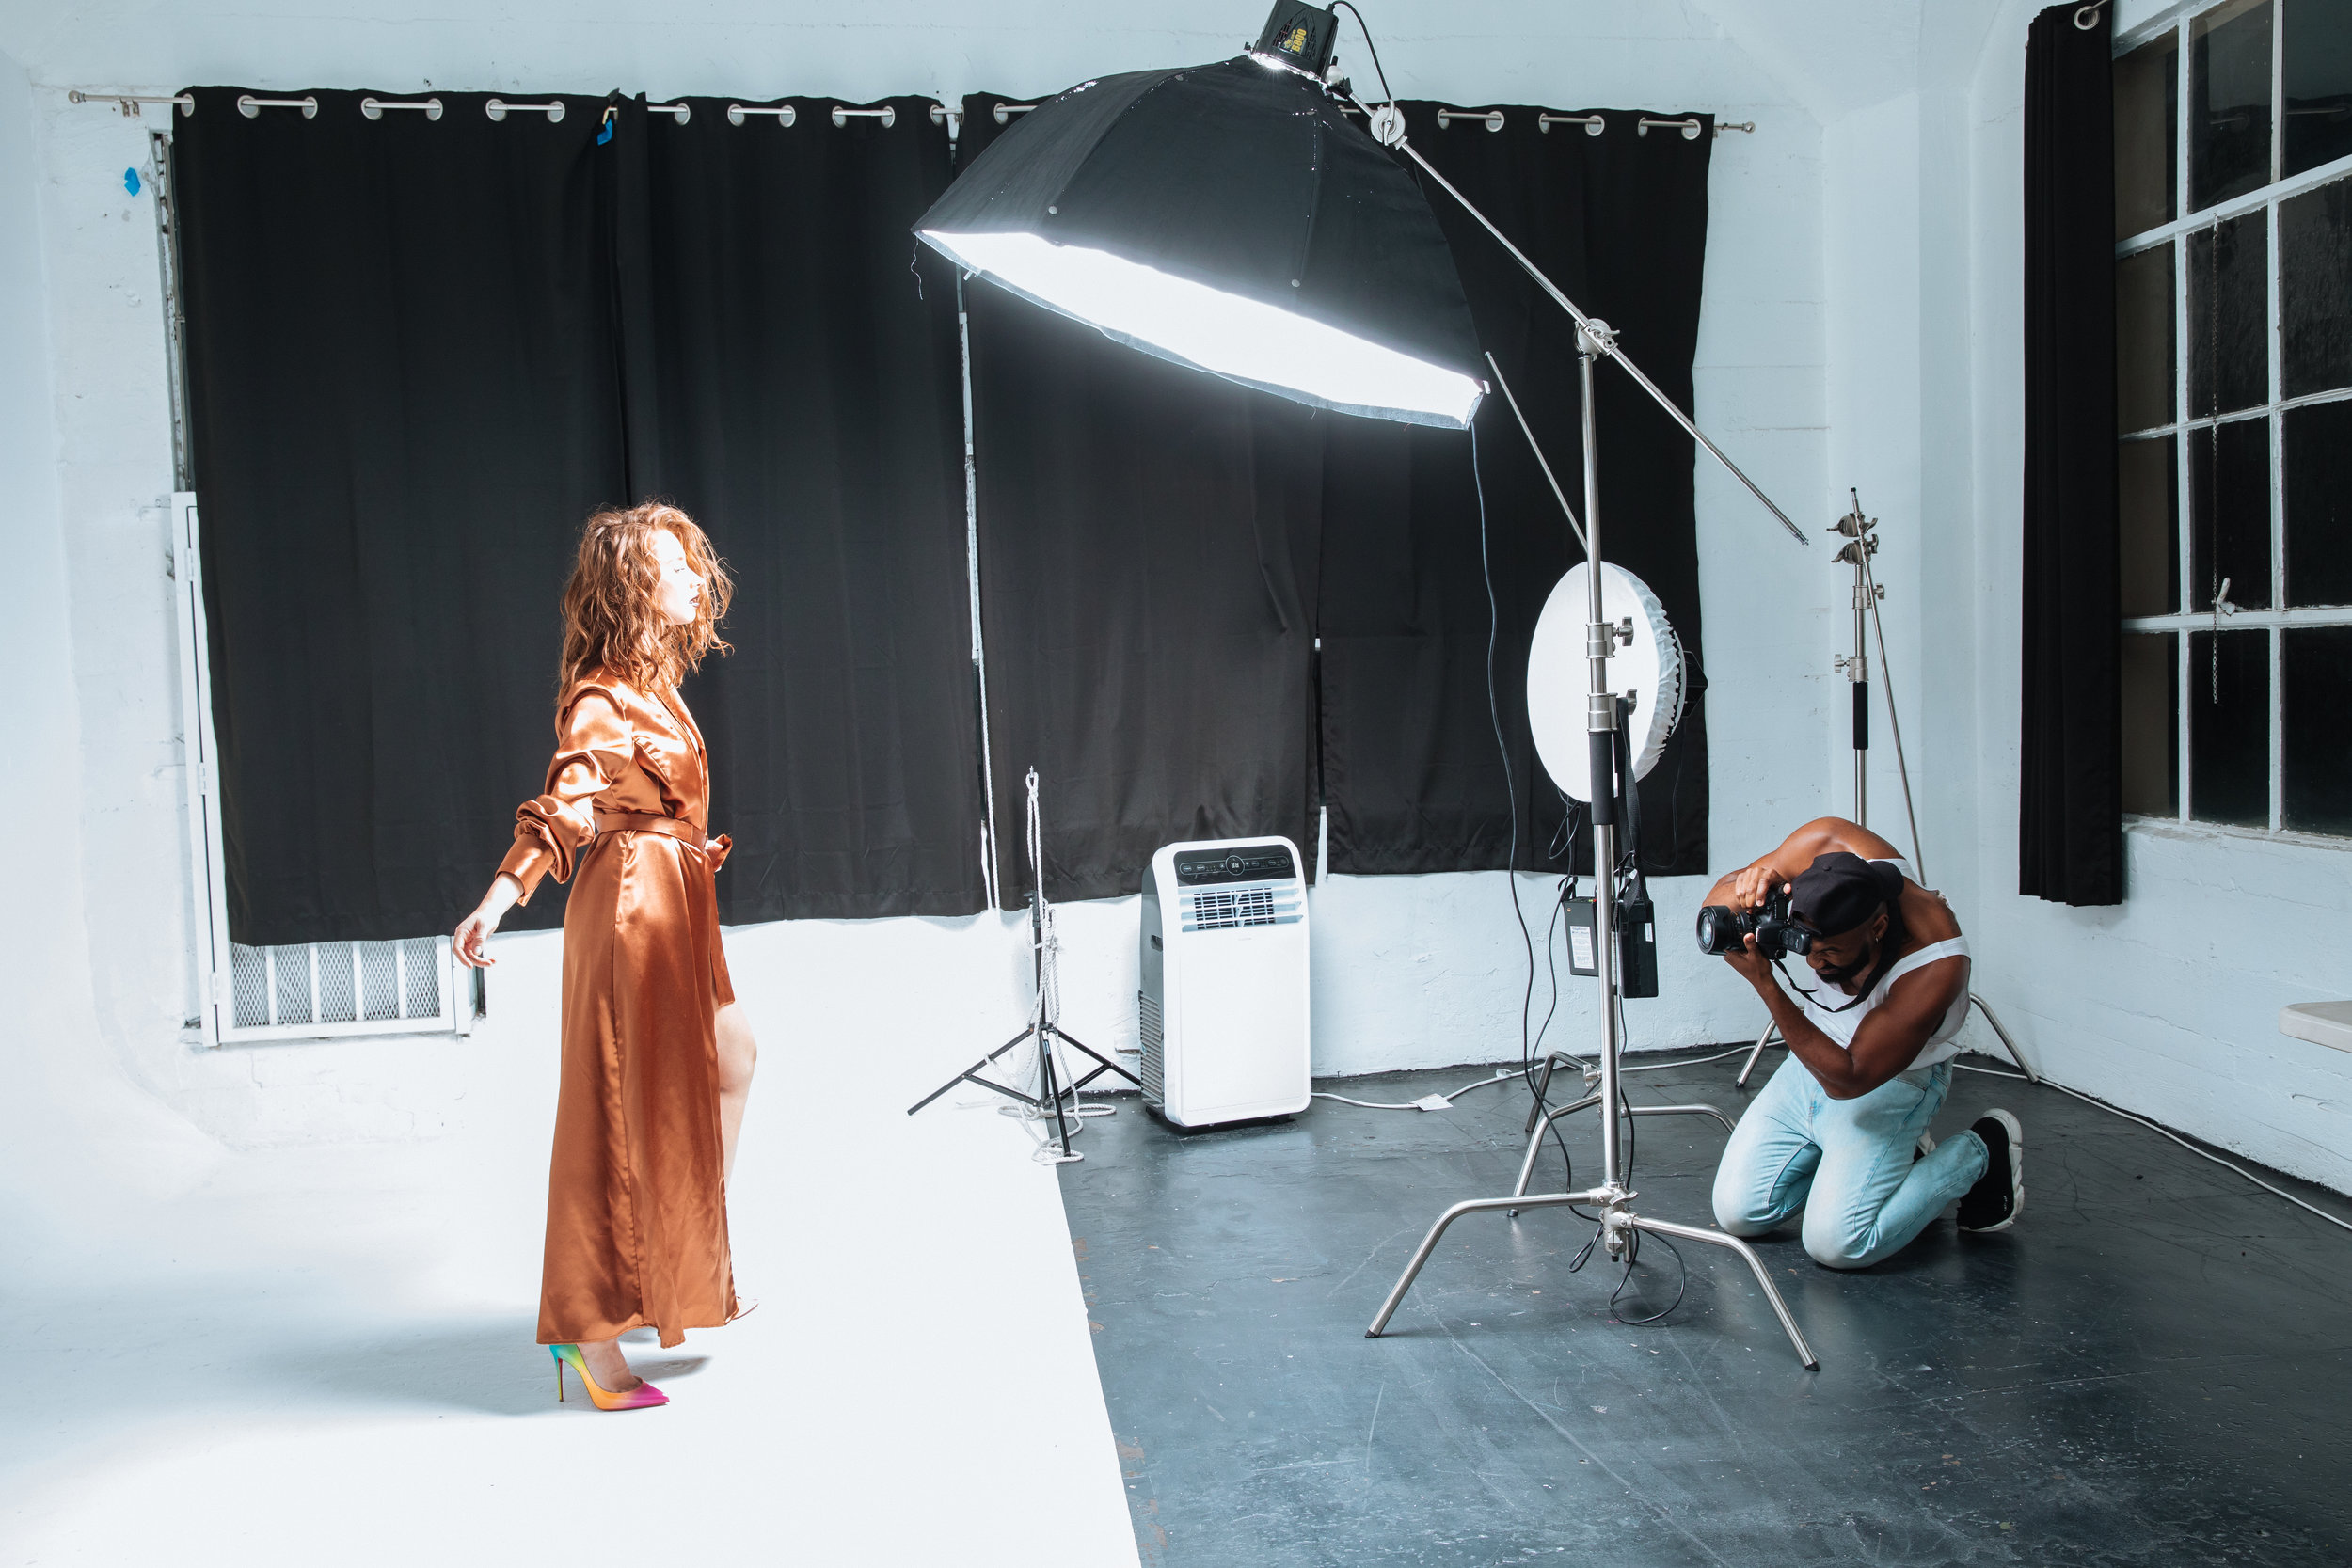 Thrive Shoots - Curated Group Photo Shoots Coming Soon